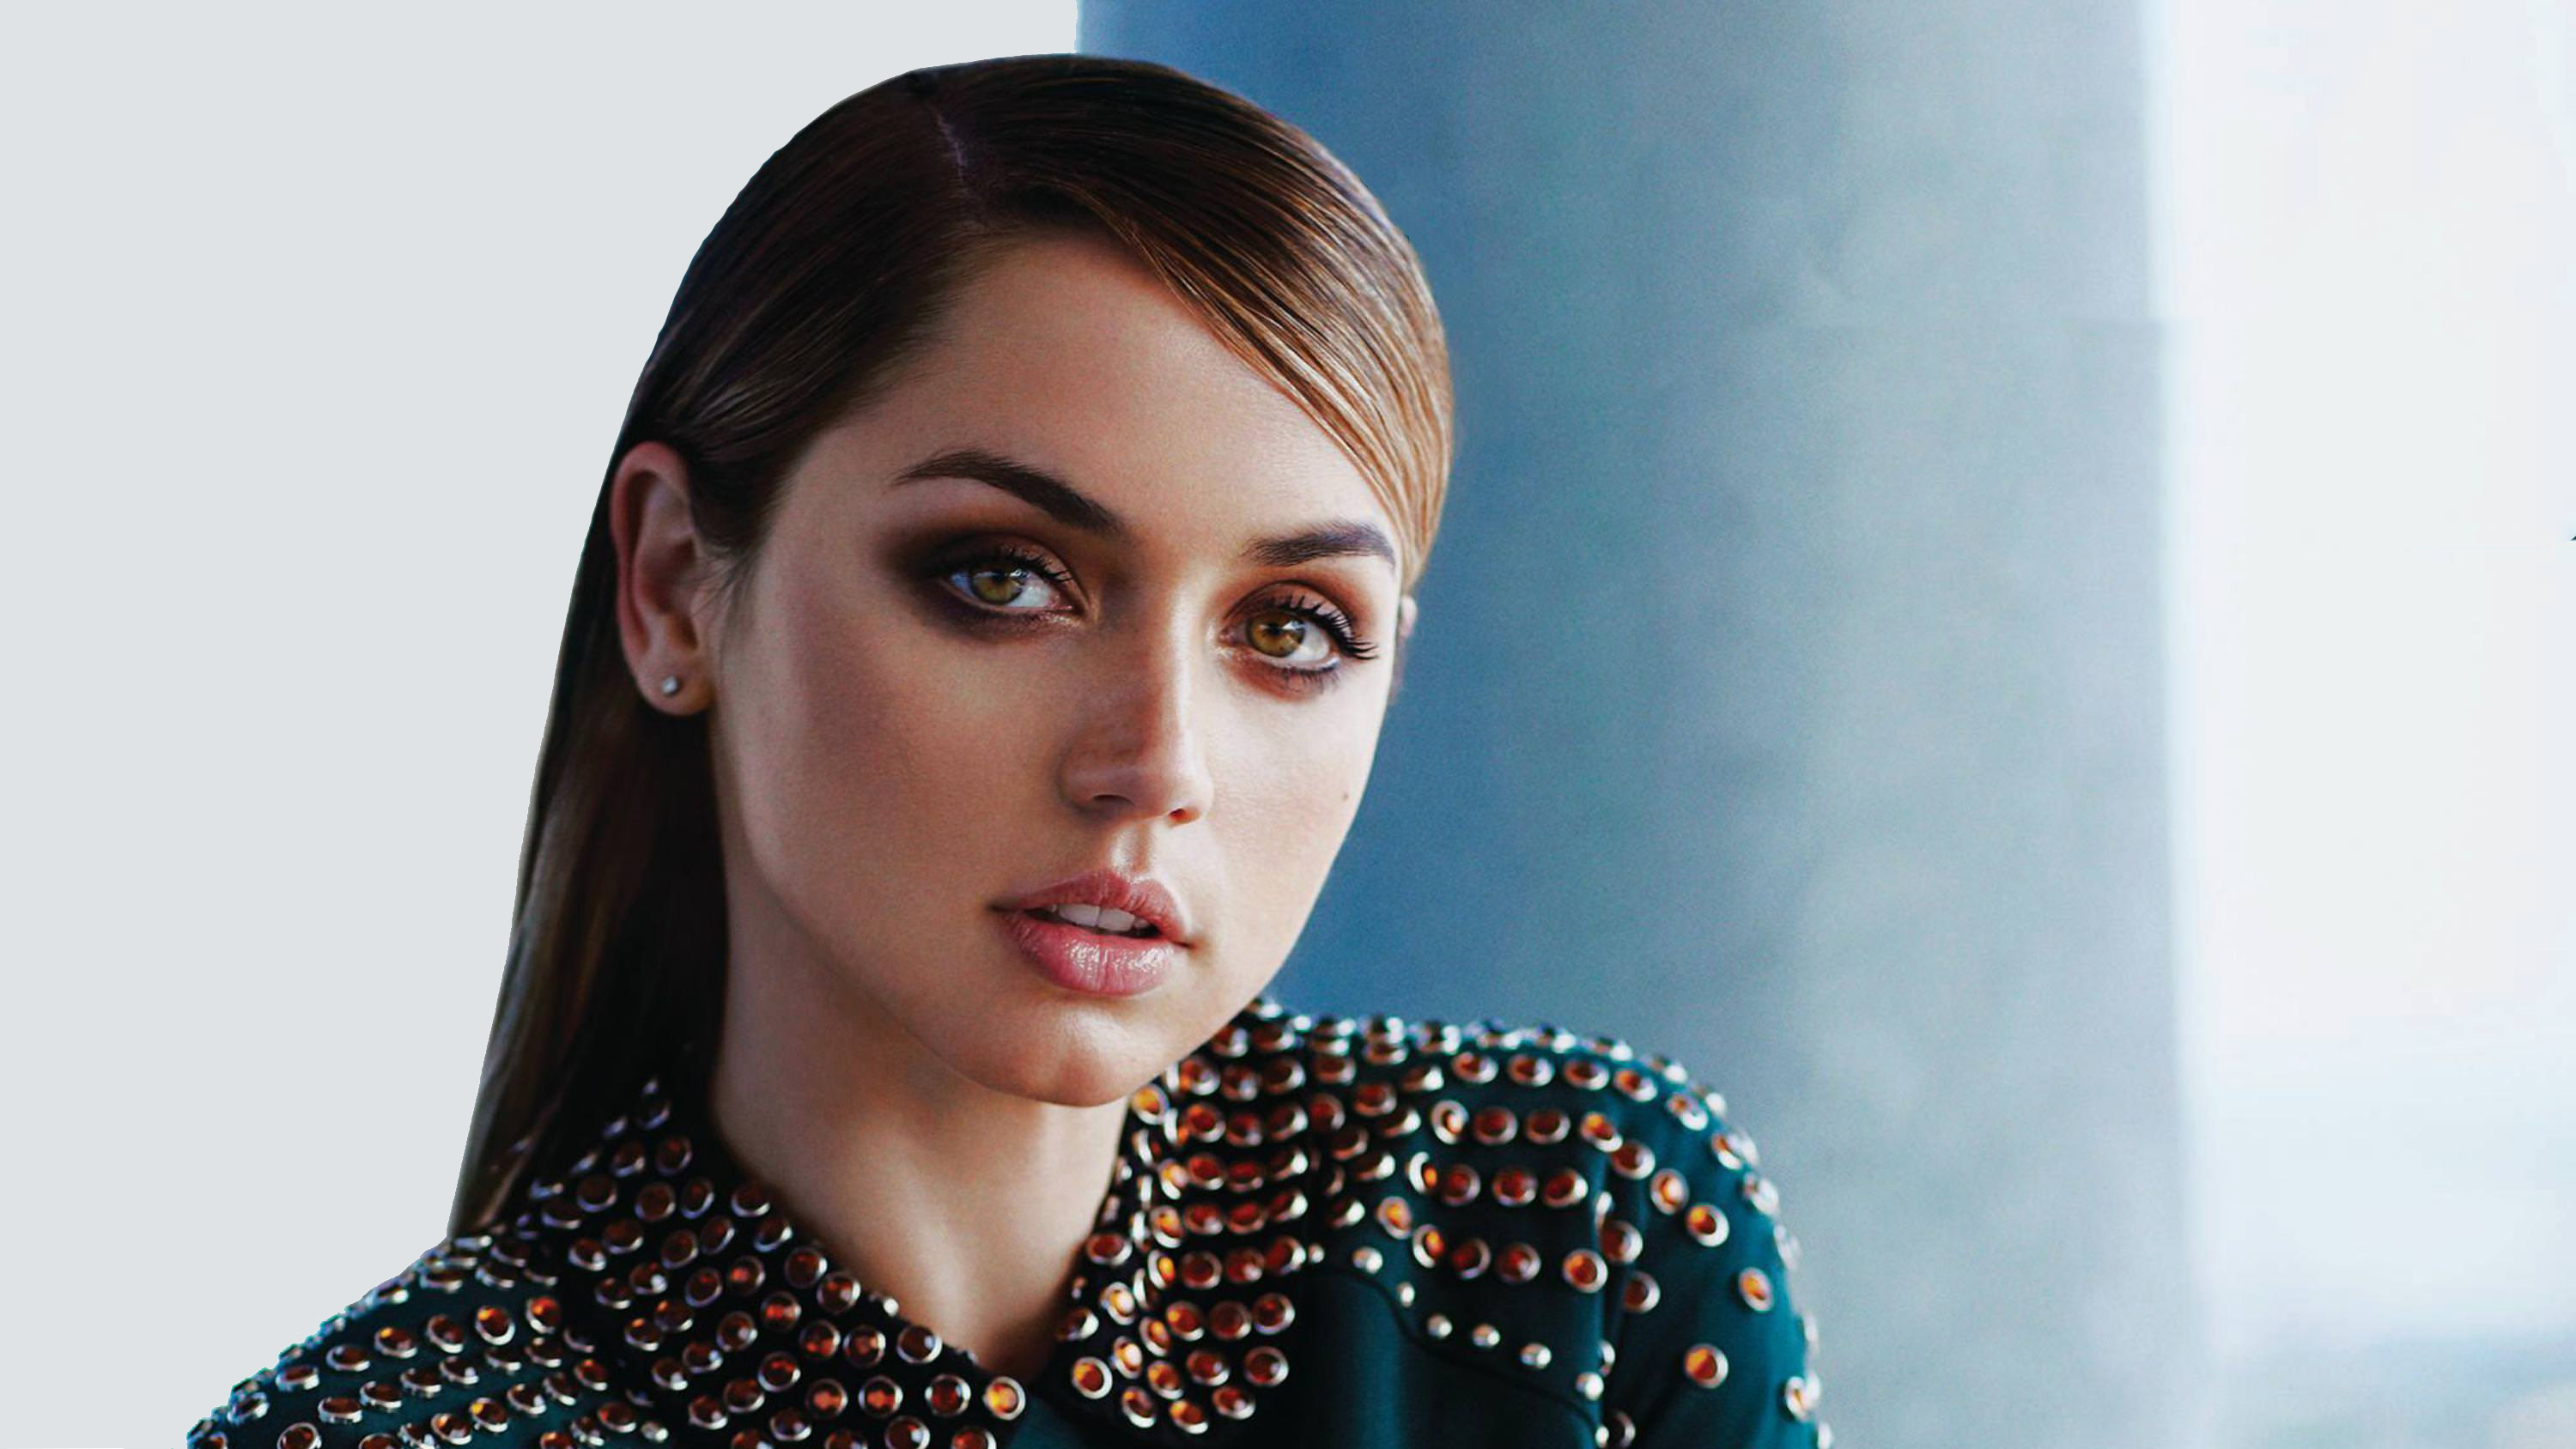 Ana De Armas Hd Posted By Ryan Anderson